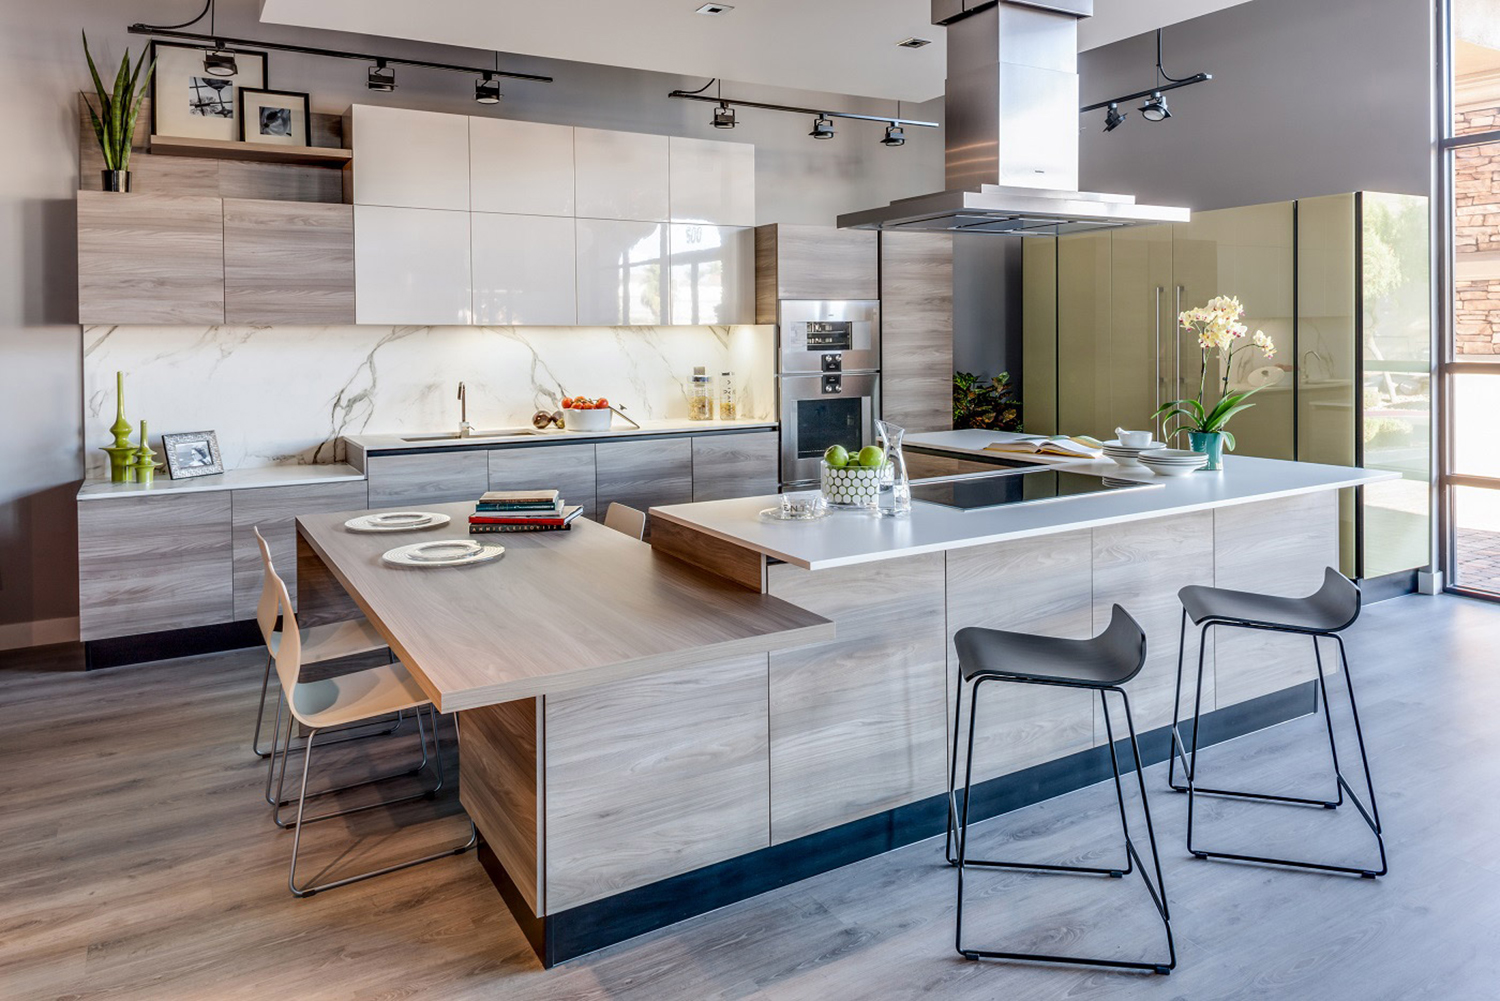 Trade Kitchens and Cabinets